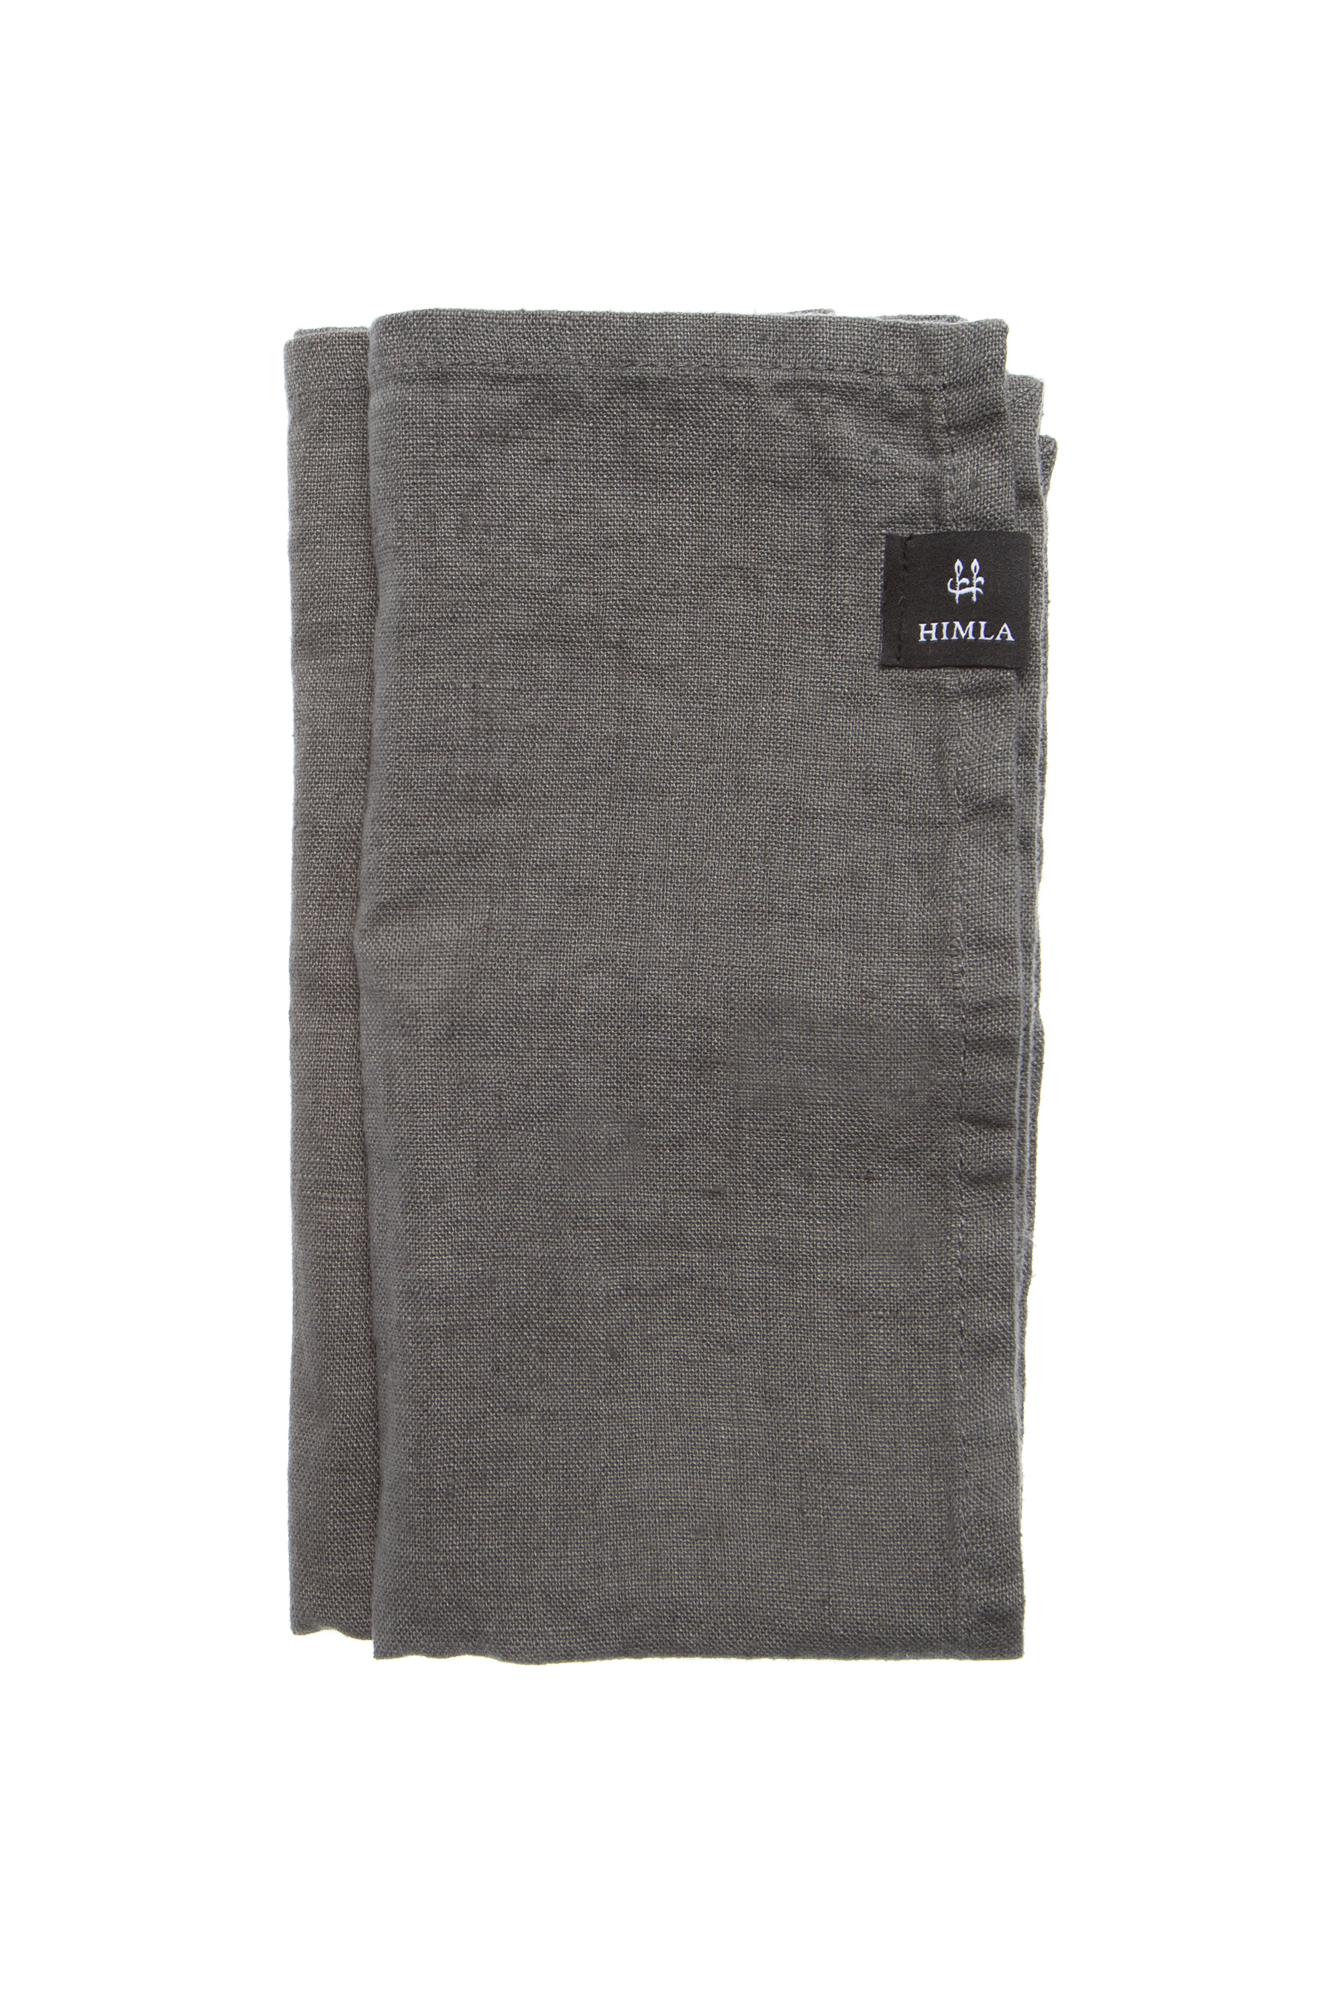 Charcoal Sunshine Linen Napkin 45x45cm (Set of 4)